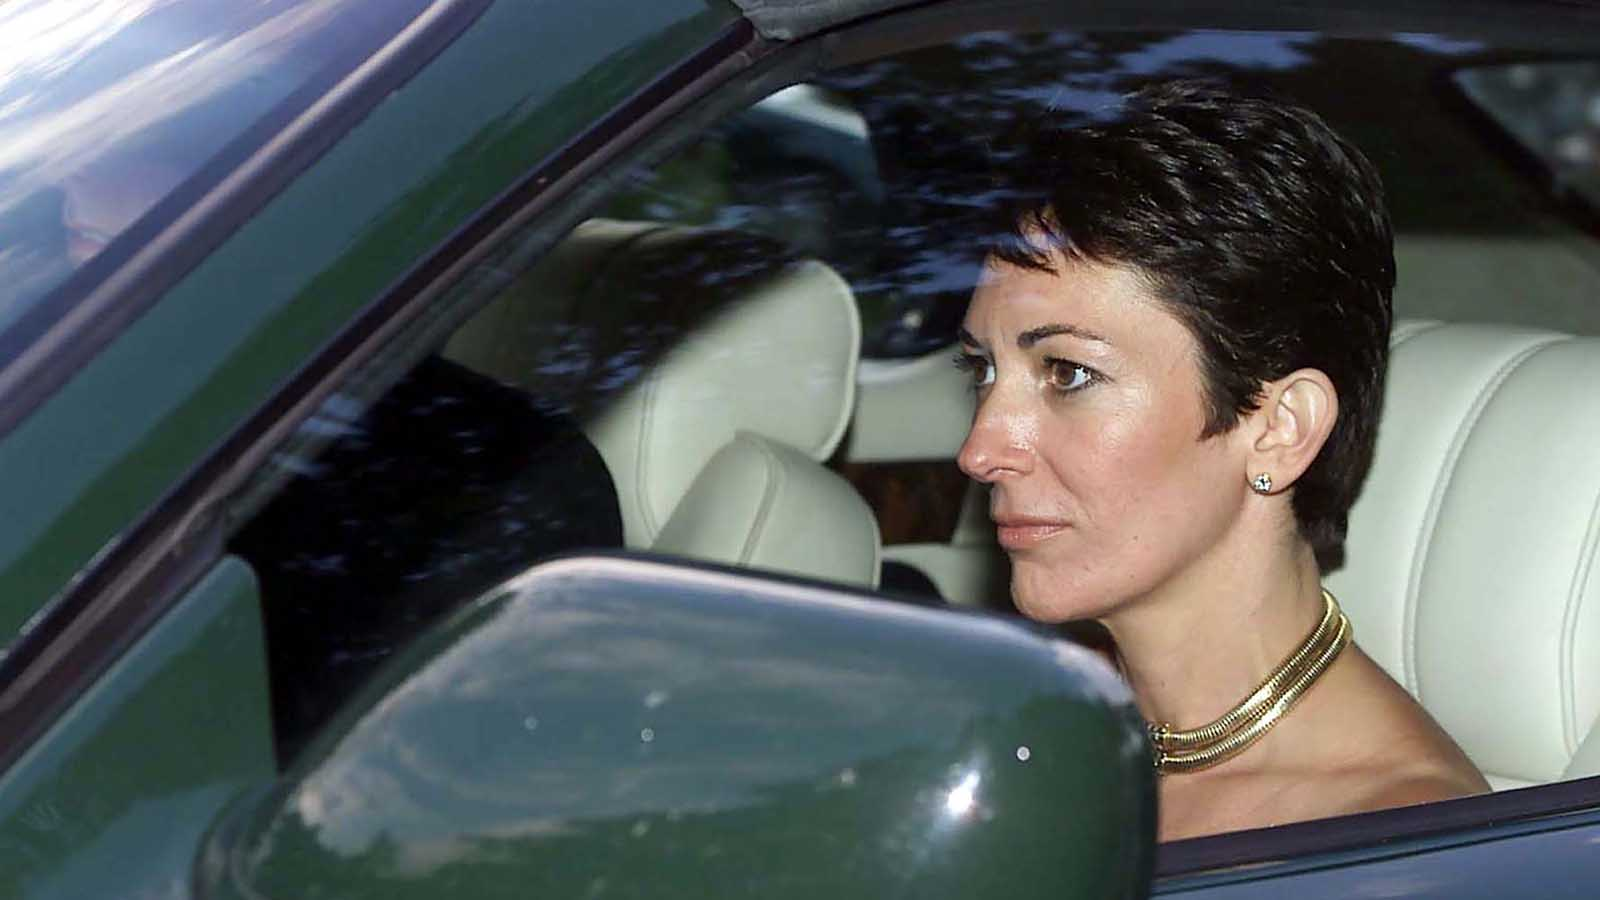 Ghislaine Maxwell has been complaining about her prison life conditions, but it turns out, her poor treatment may be because the U.S. is protecting her.